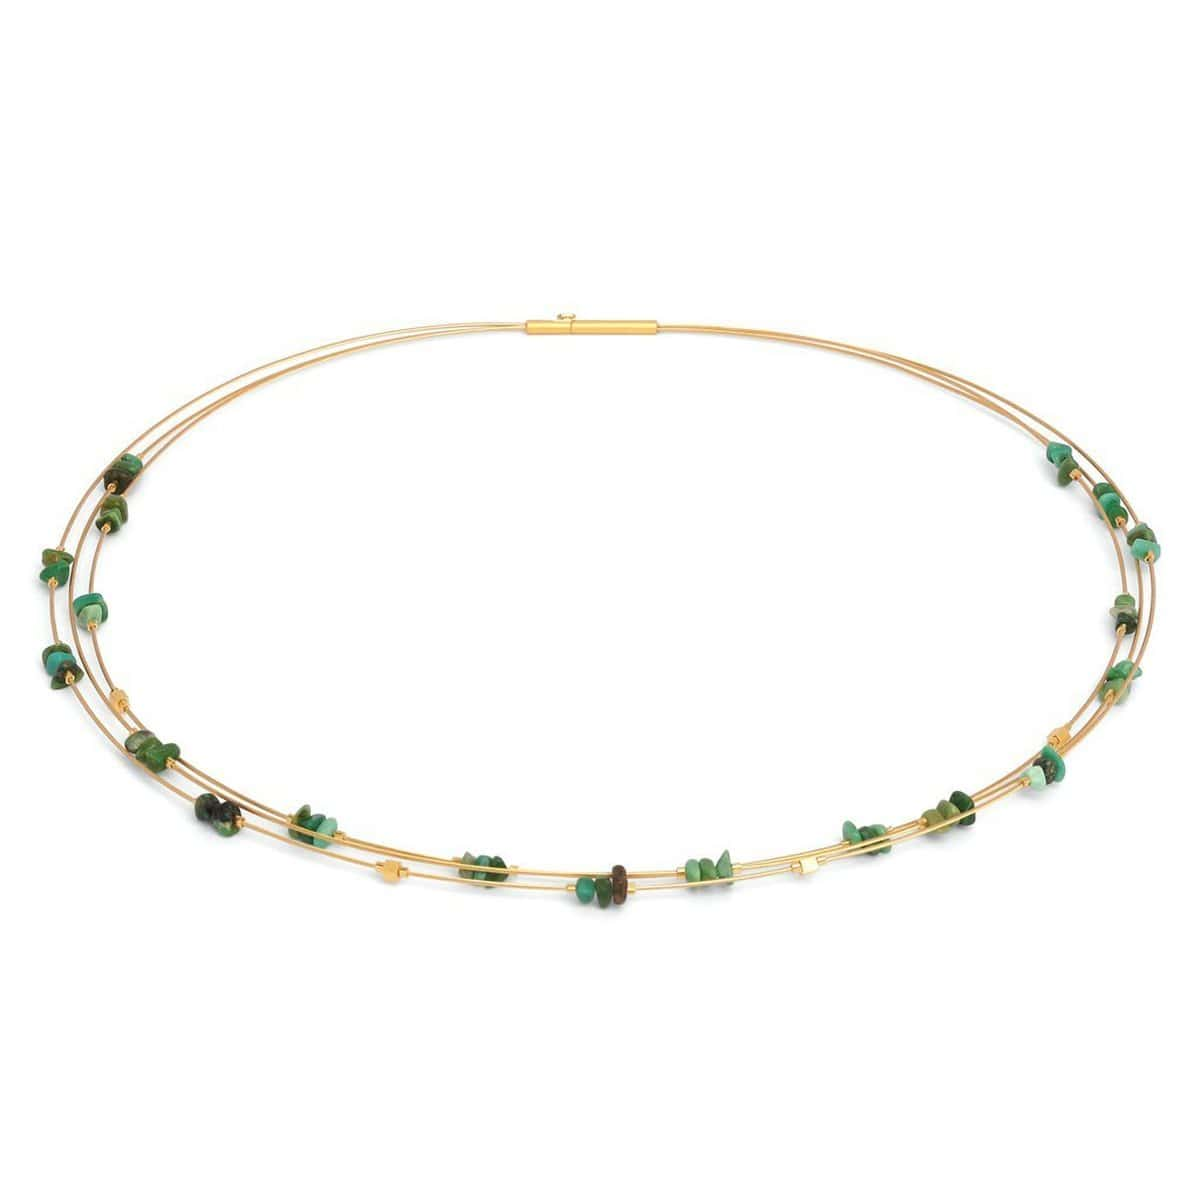 Chipo Green Turquoise Necklace - 85399356-Bernd Wolf-Renee Taylor Gallery